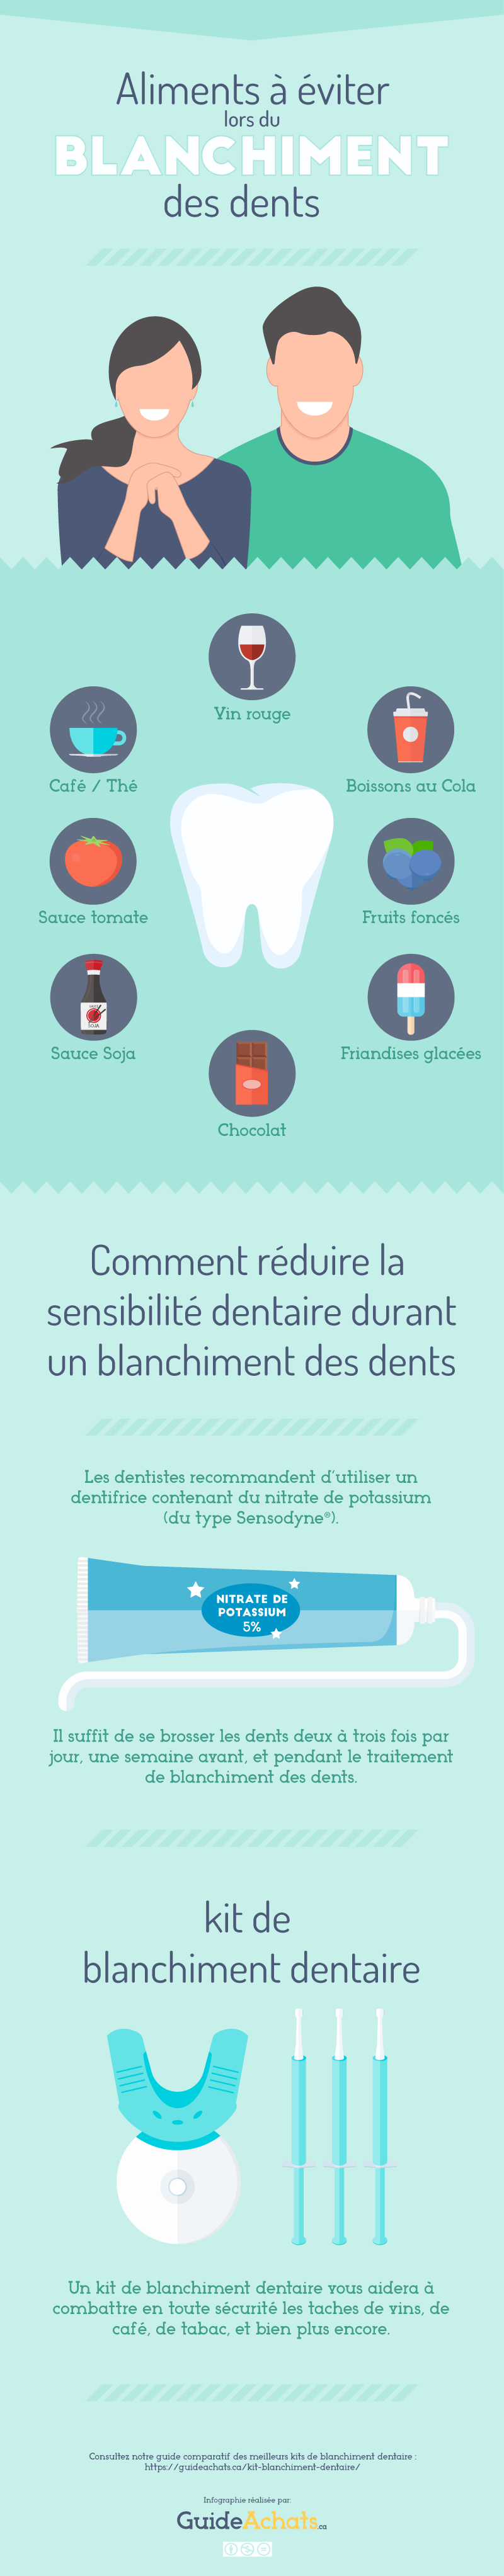 aliments-a-eviter-blanchiment-dentaire-infographie